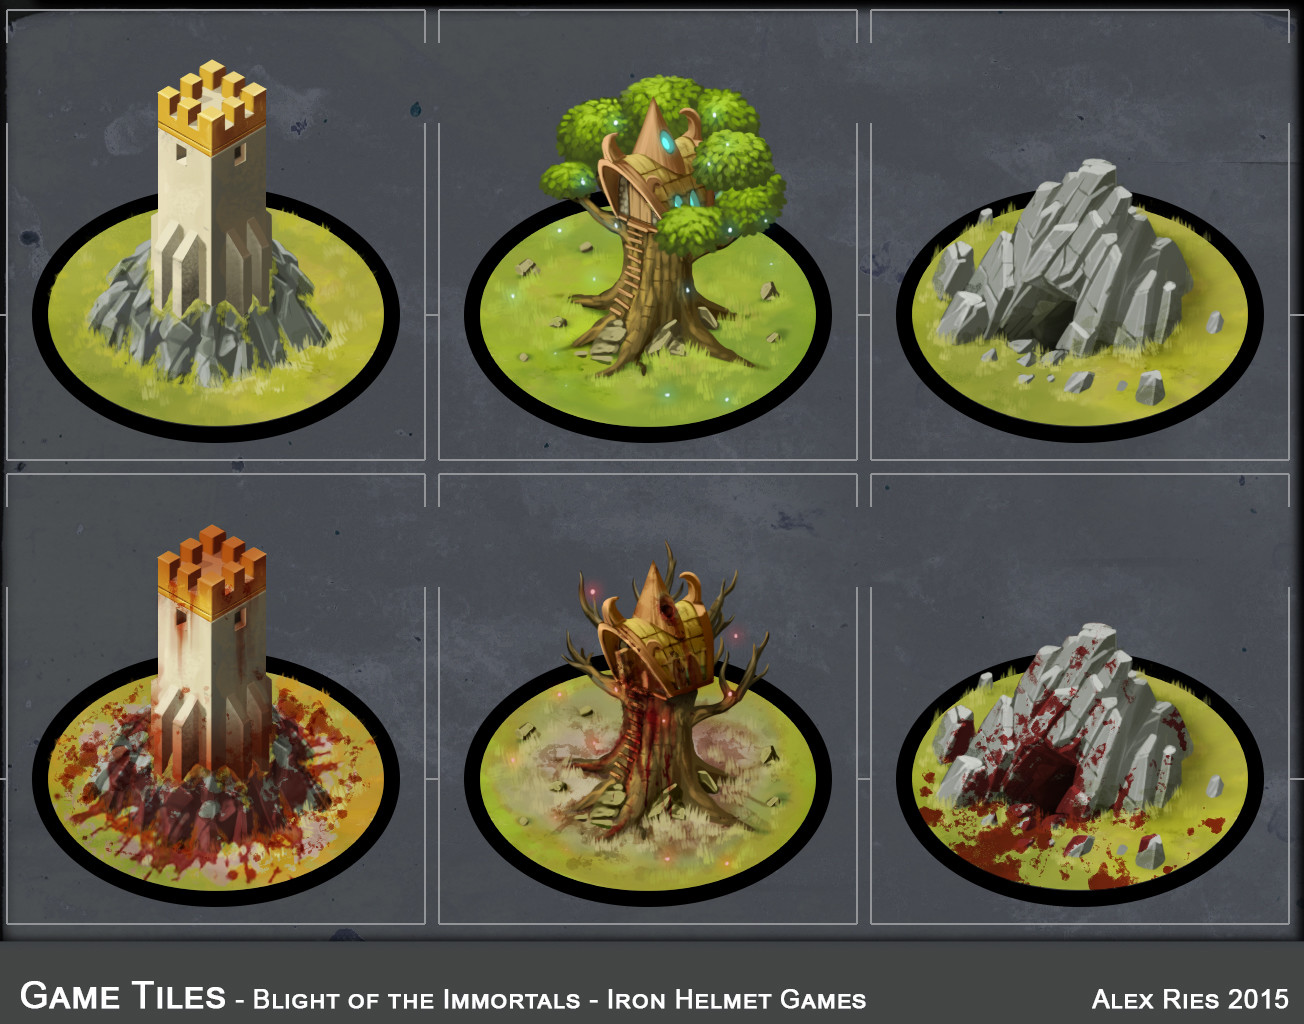 Game tiles, in normal and infected forms